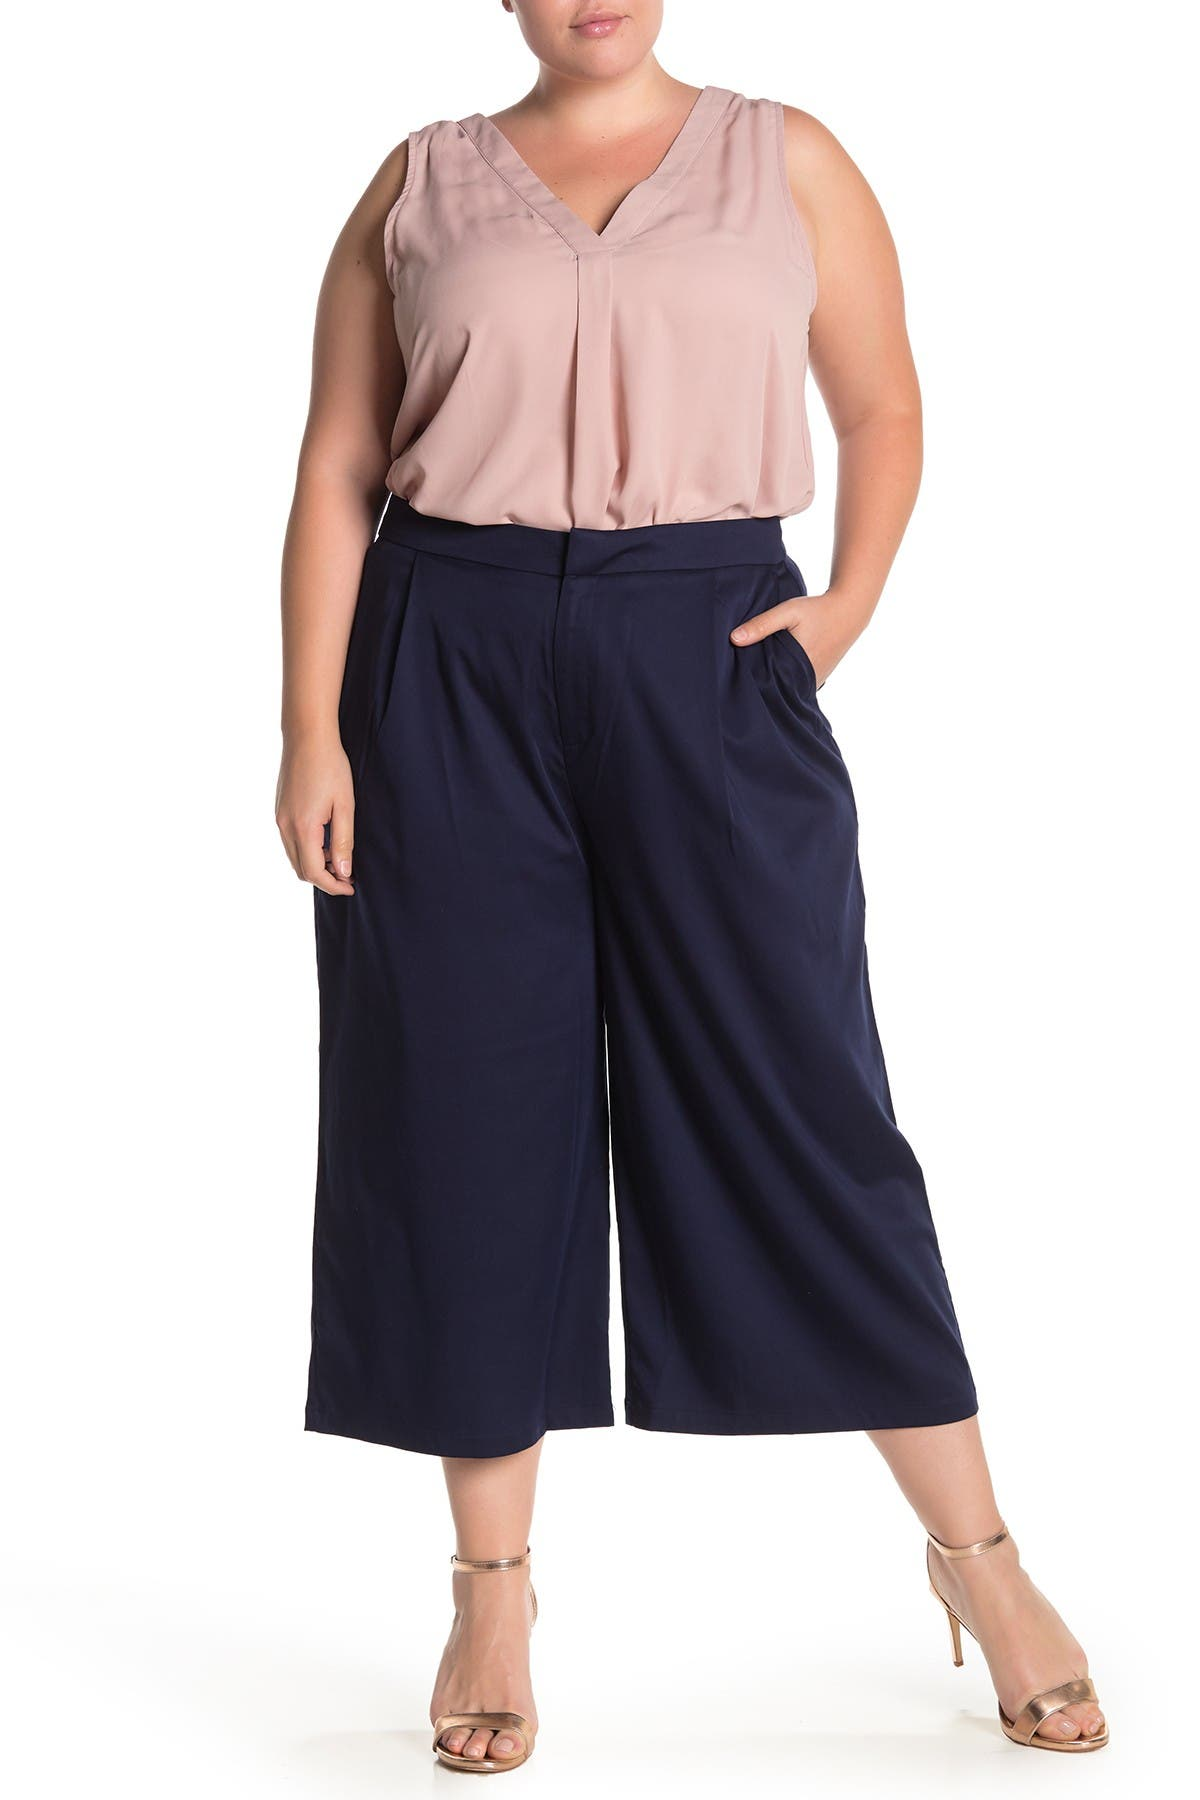 Image of ELOQUII Essential Wide Leg Cropped Pant